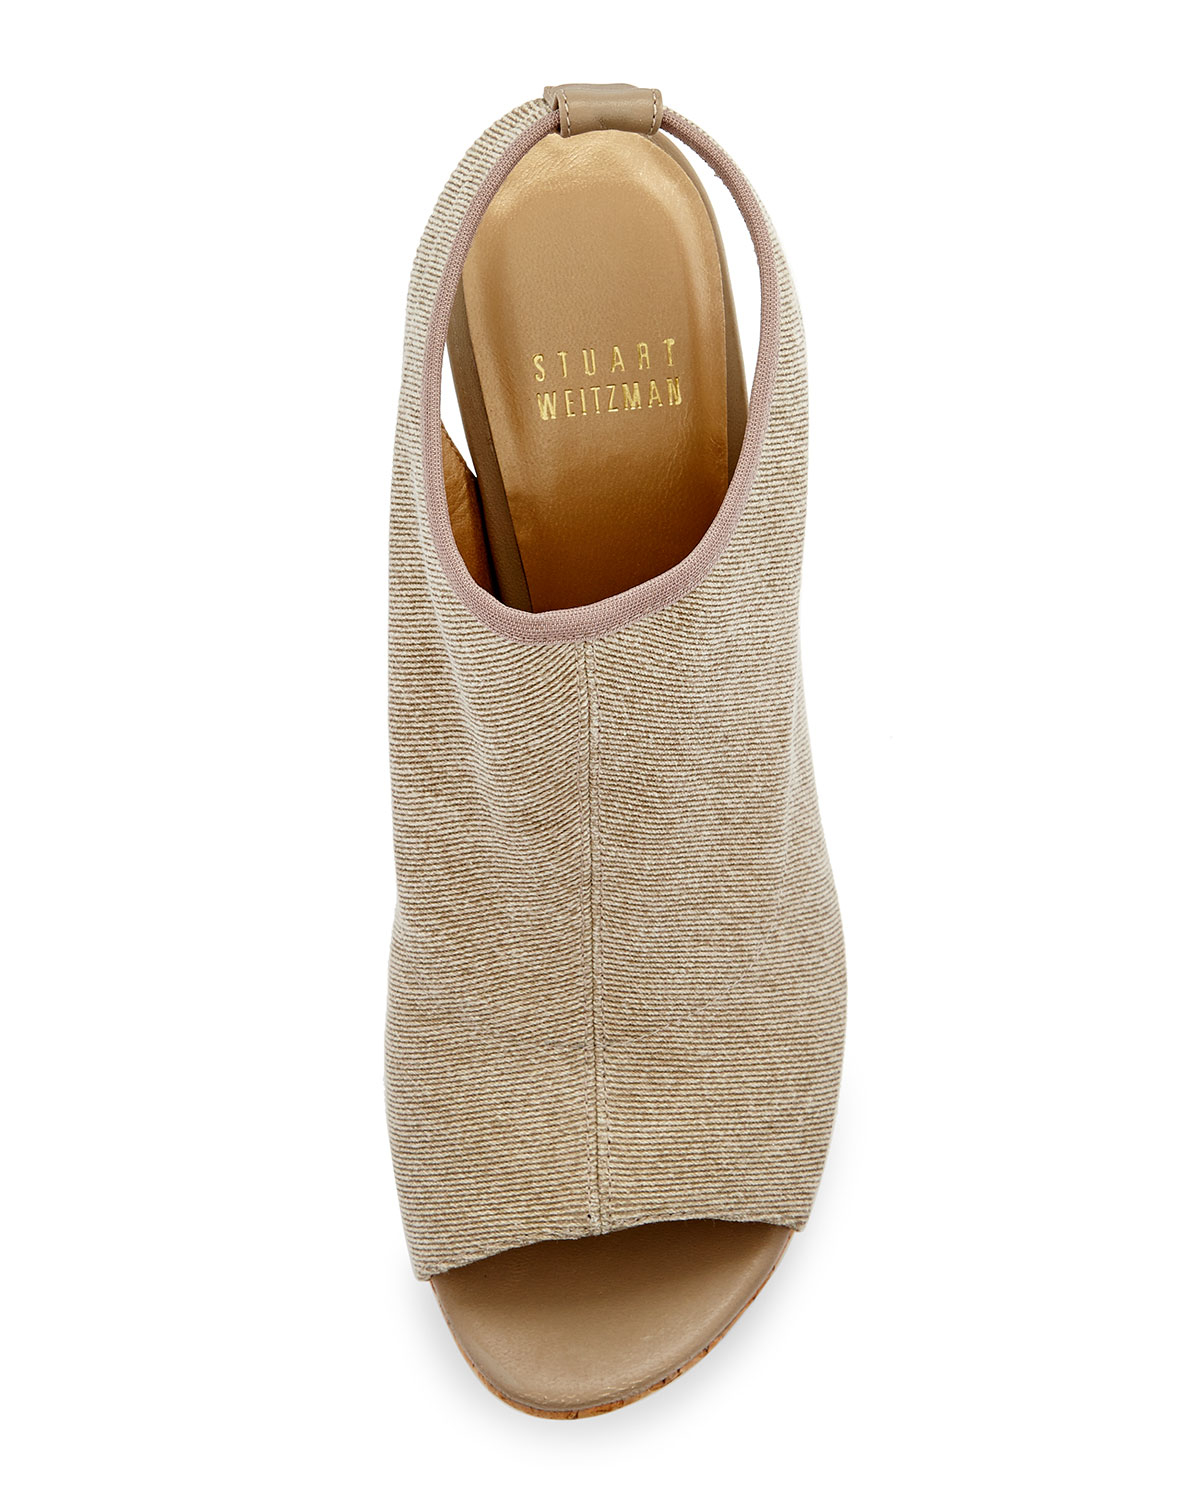 Lyst Stuart Weitzman Glover Stretch Wedge Sandal In Natural